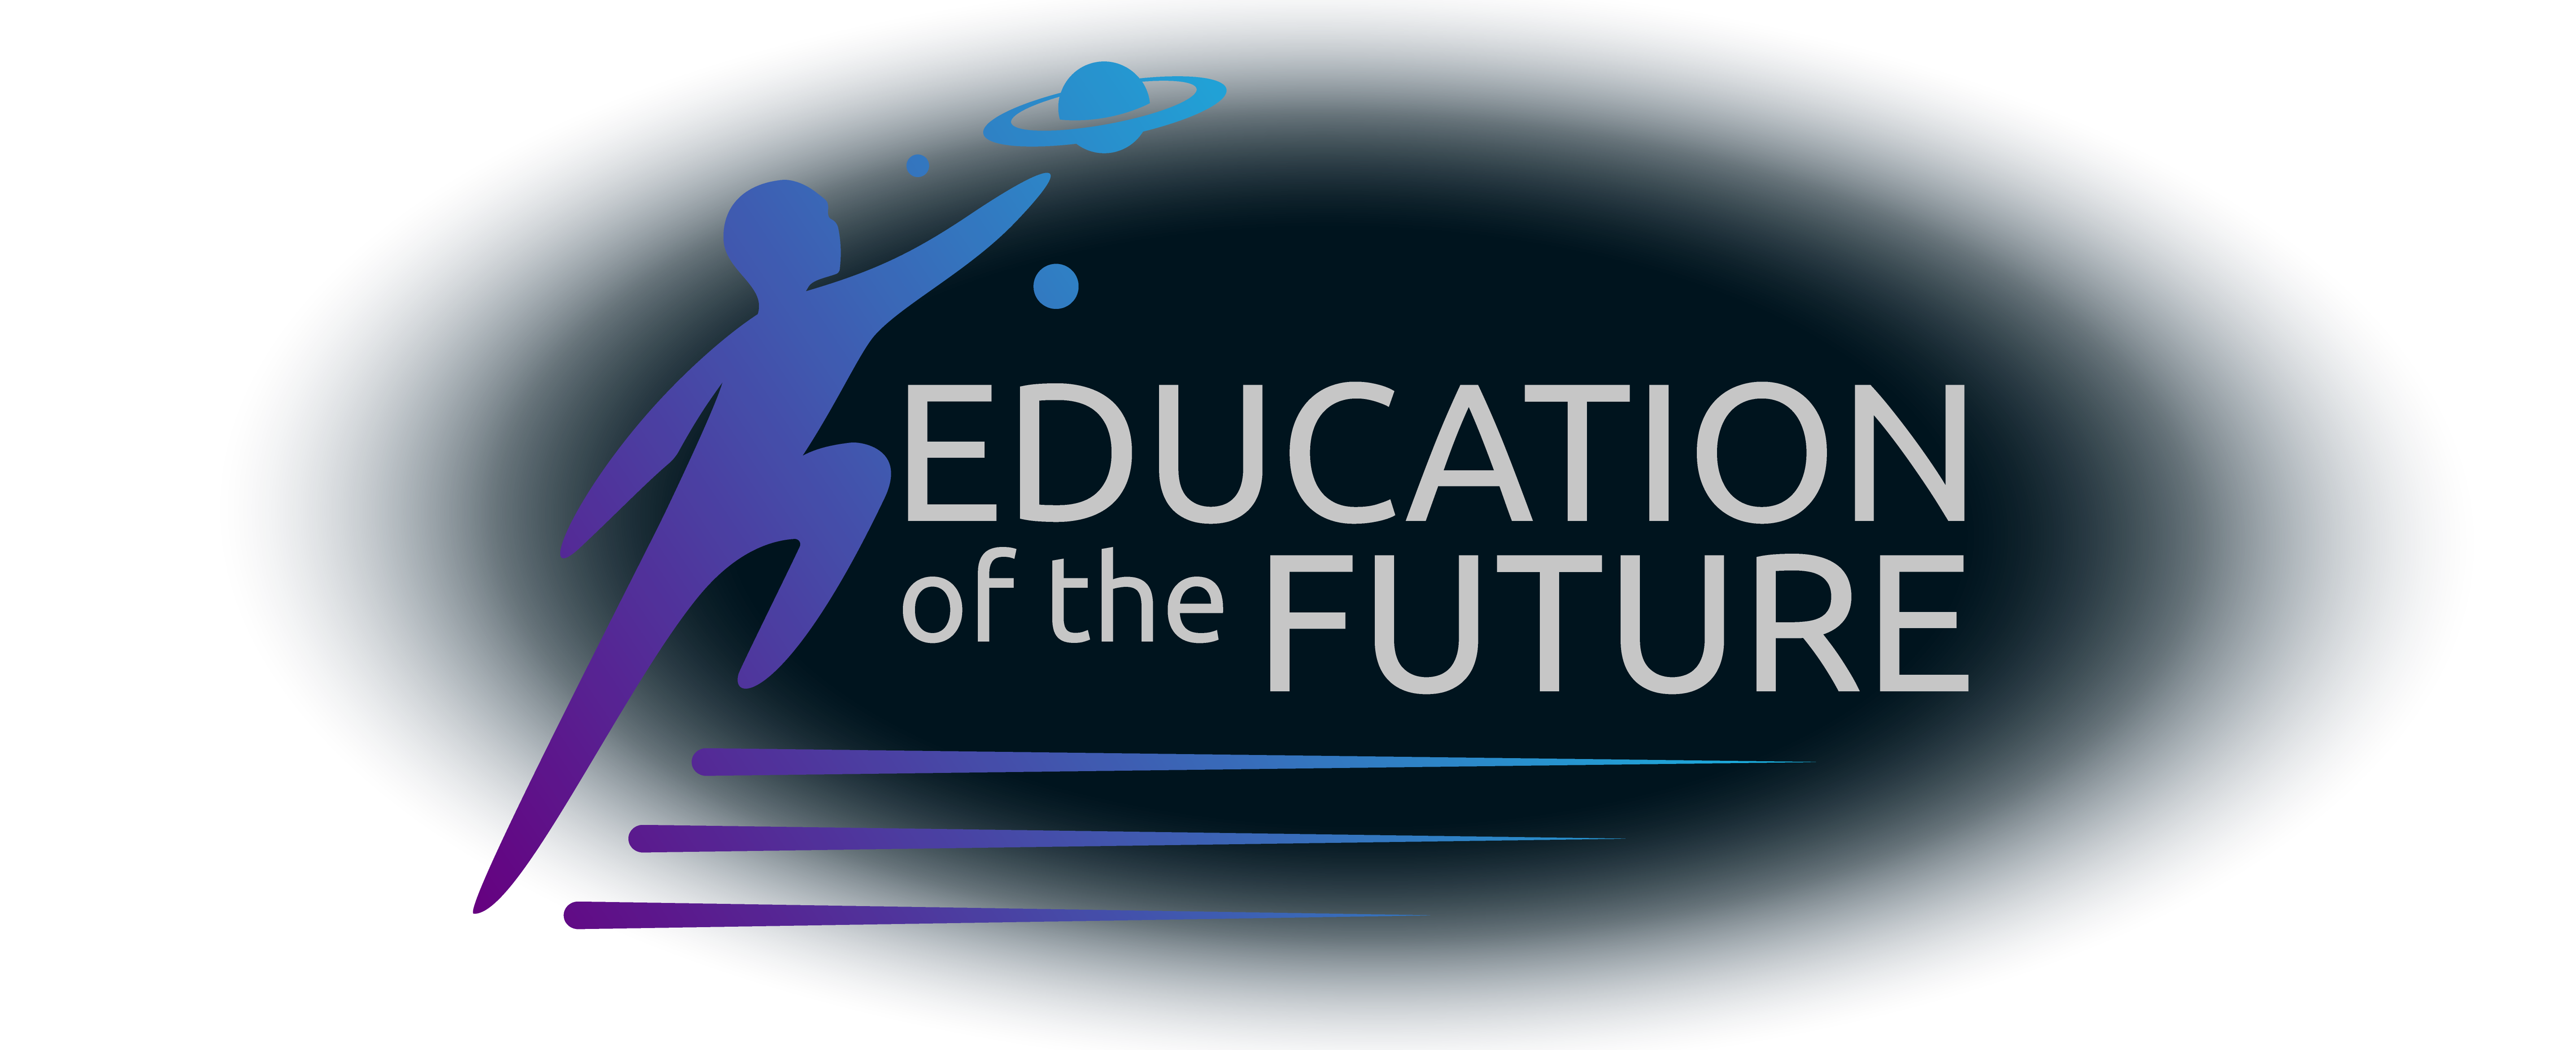 Education of Future